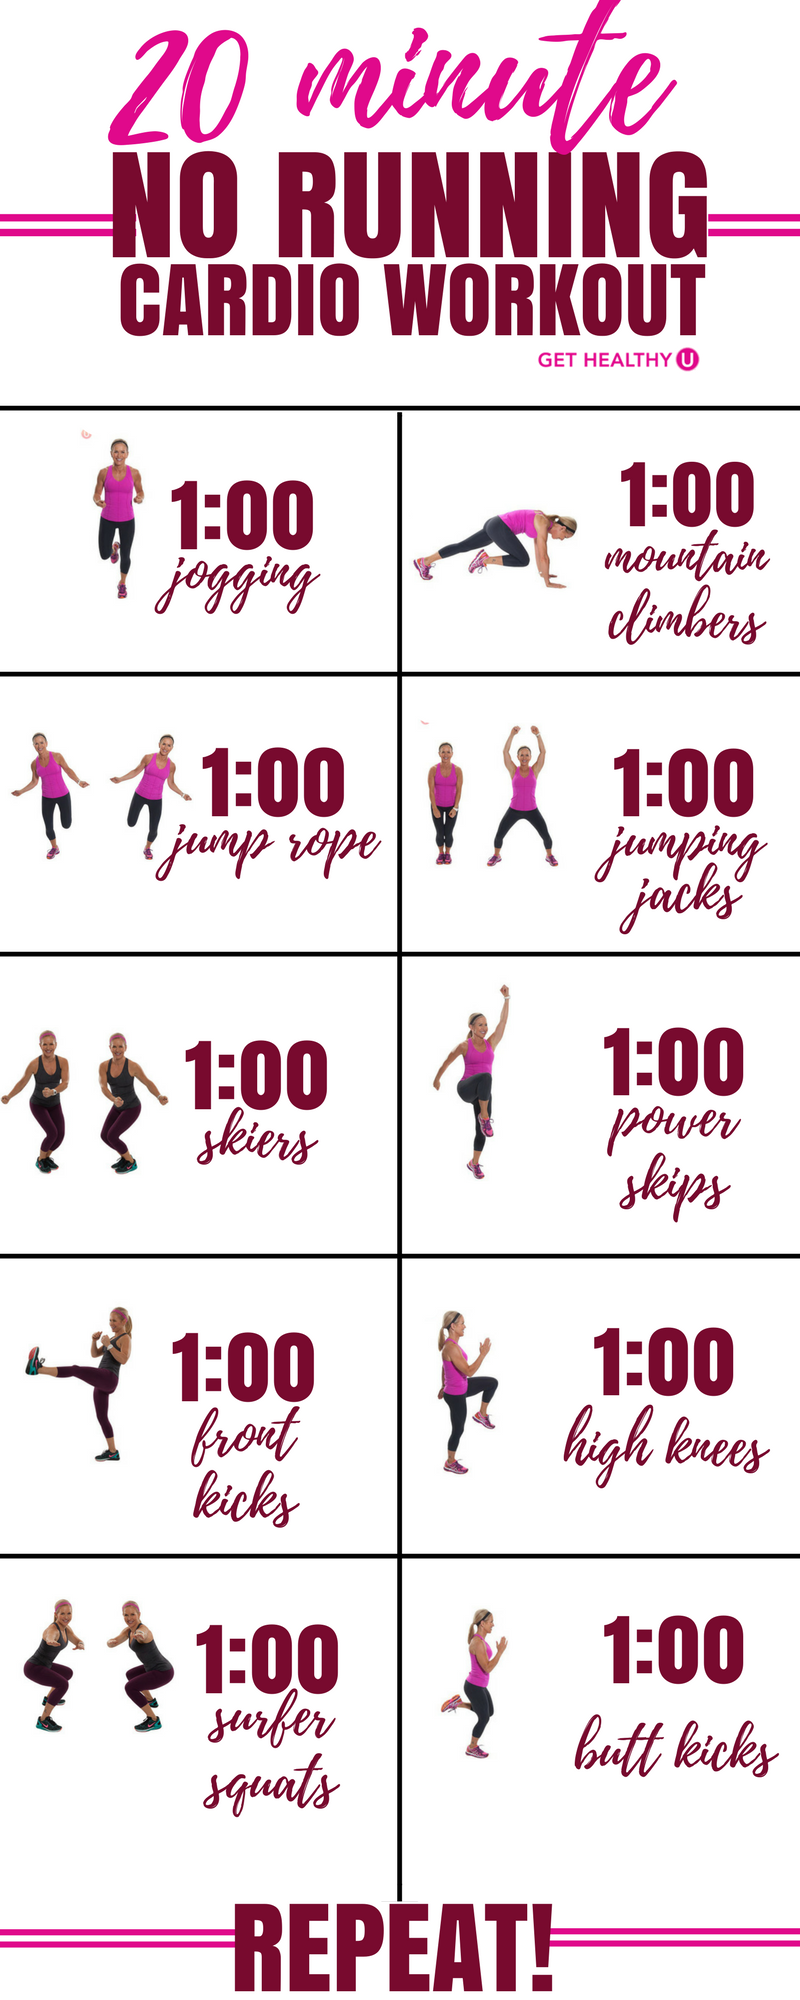 20-Minute No-Running Cardio Workout | Cardio, At home ...